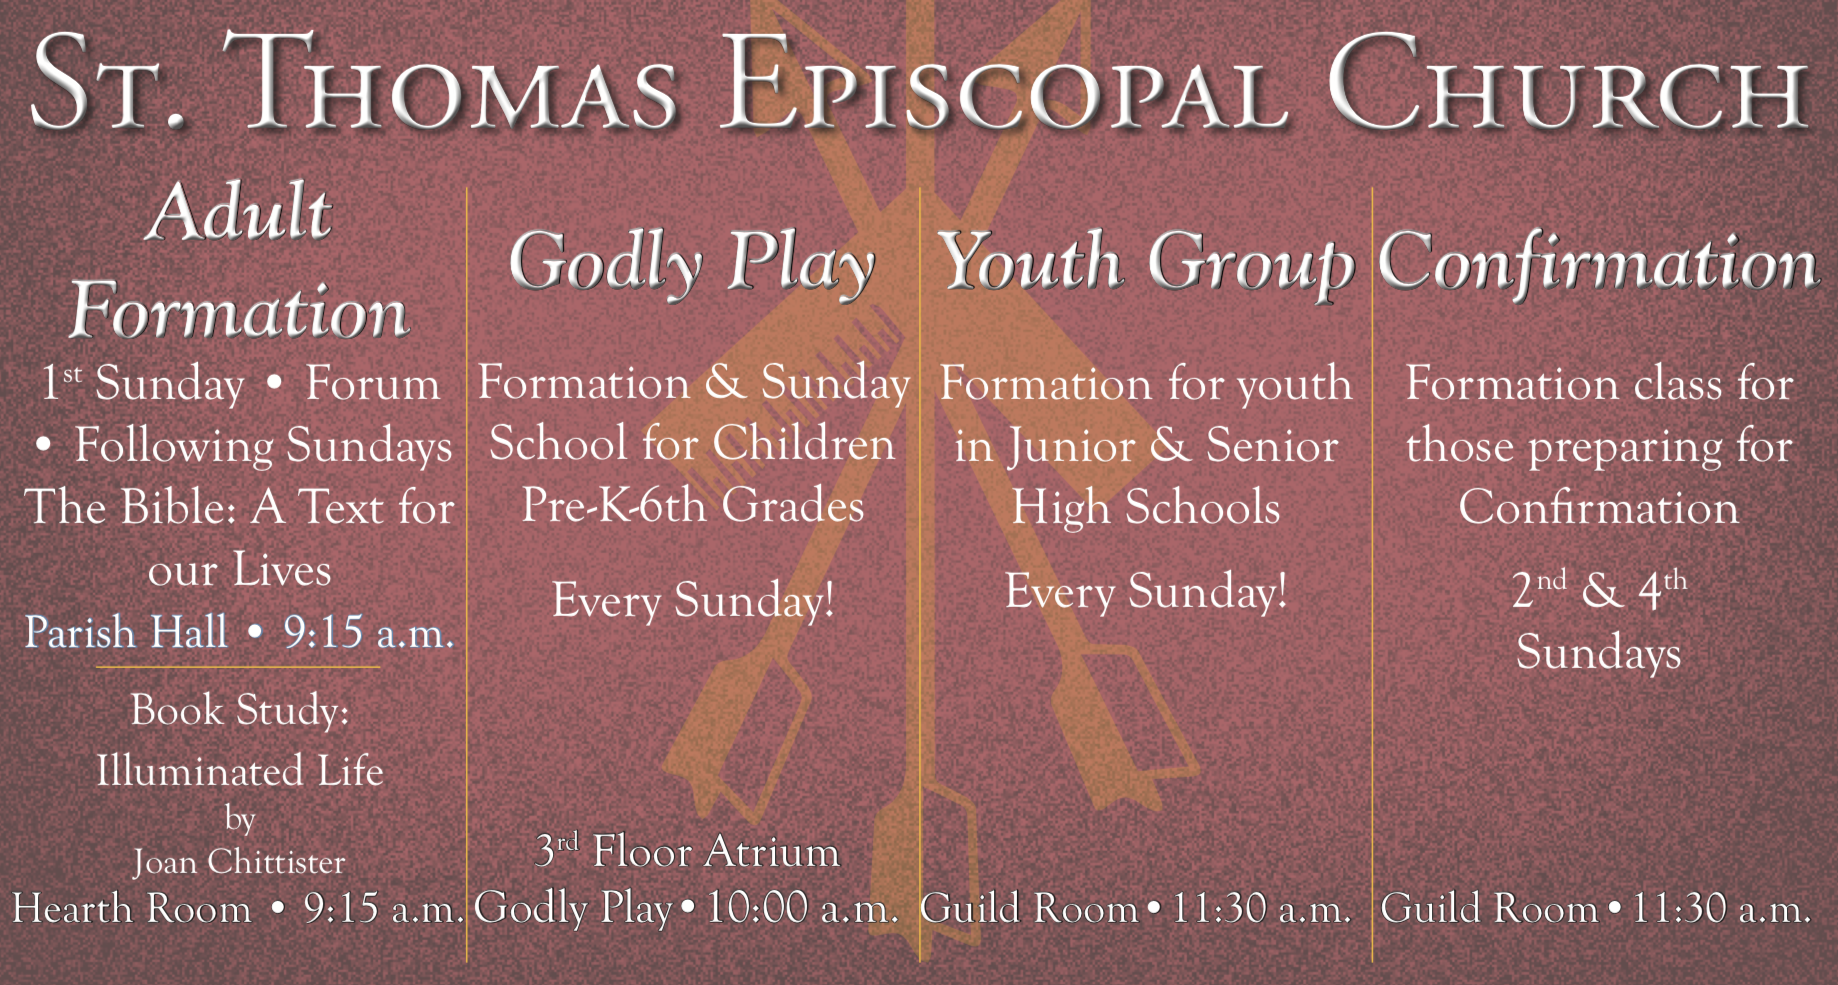 Sunday Formation Poster Image